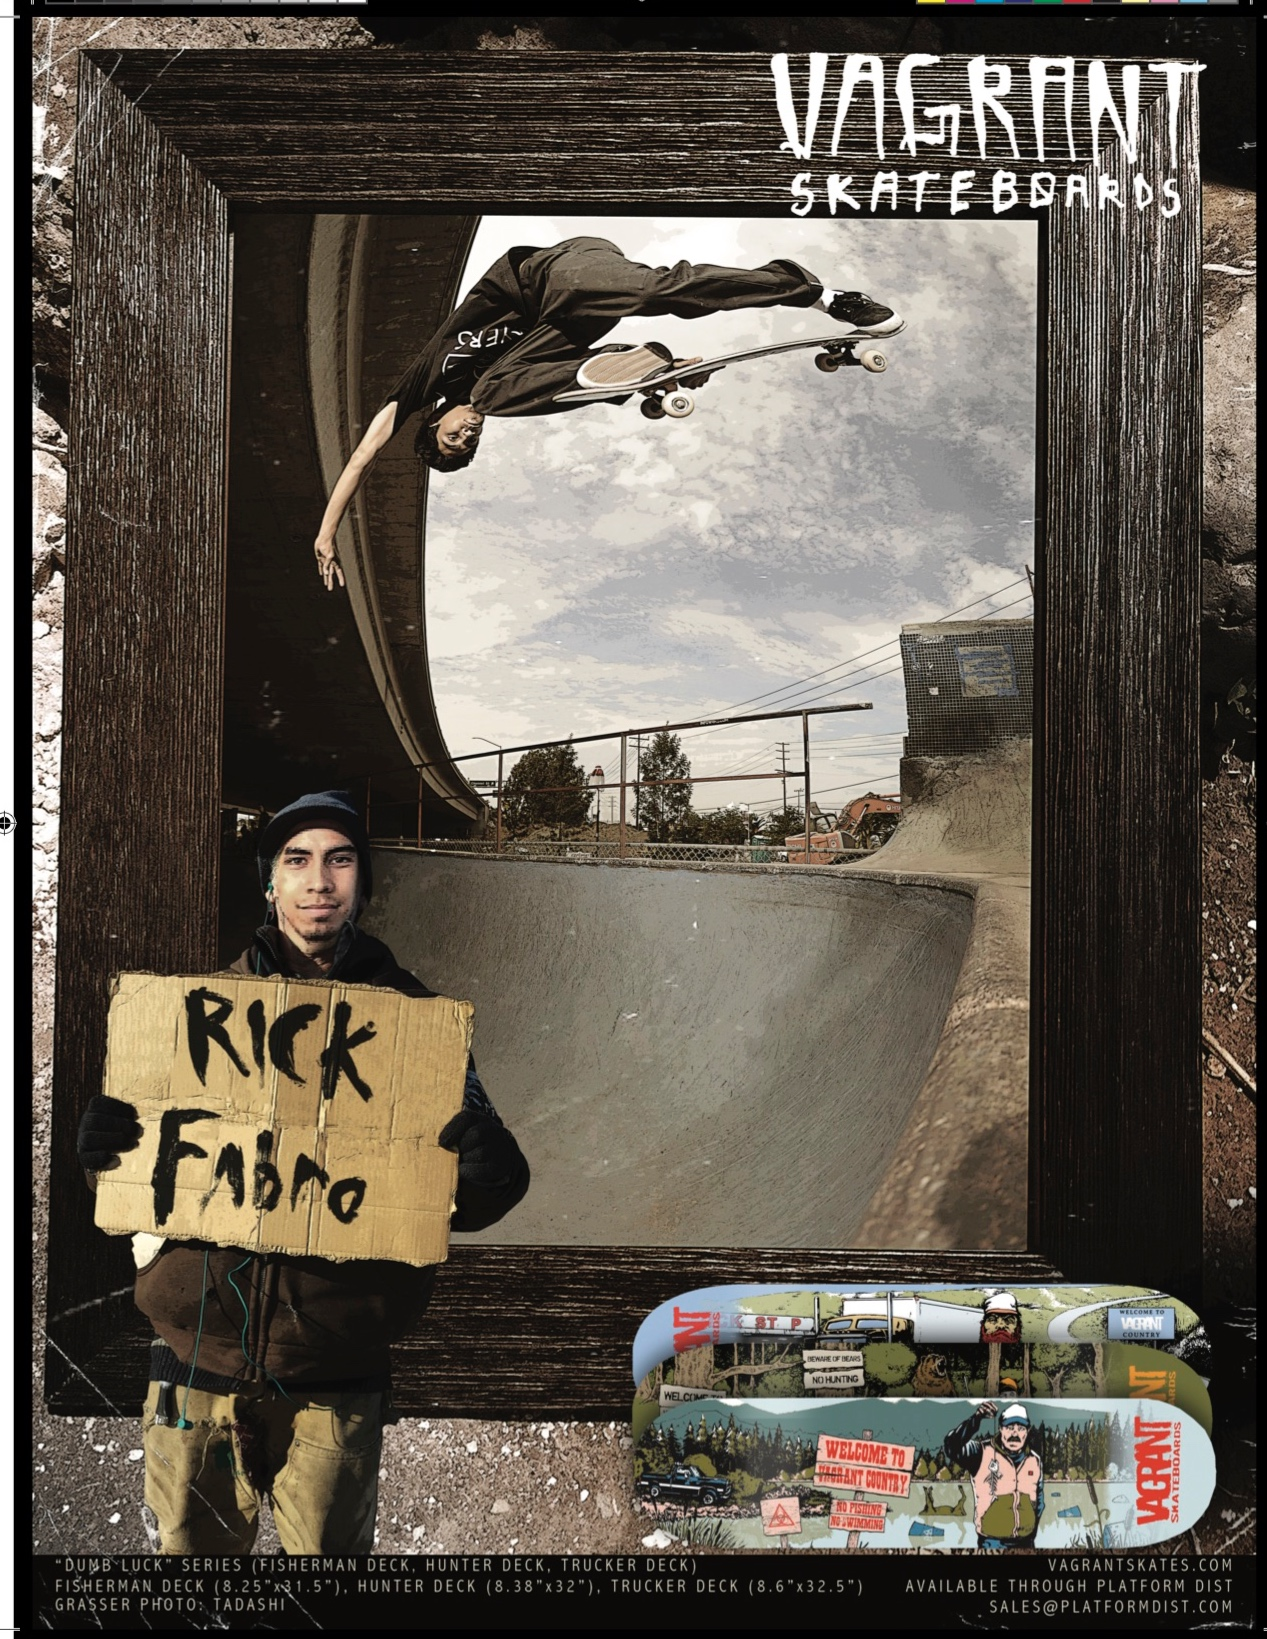 Vagrant Skateboards ad in Concrete Magazine